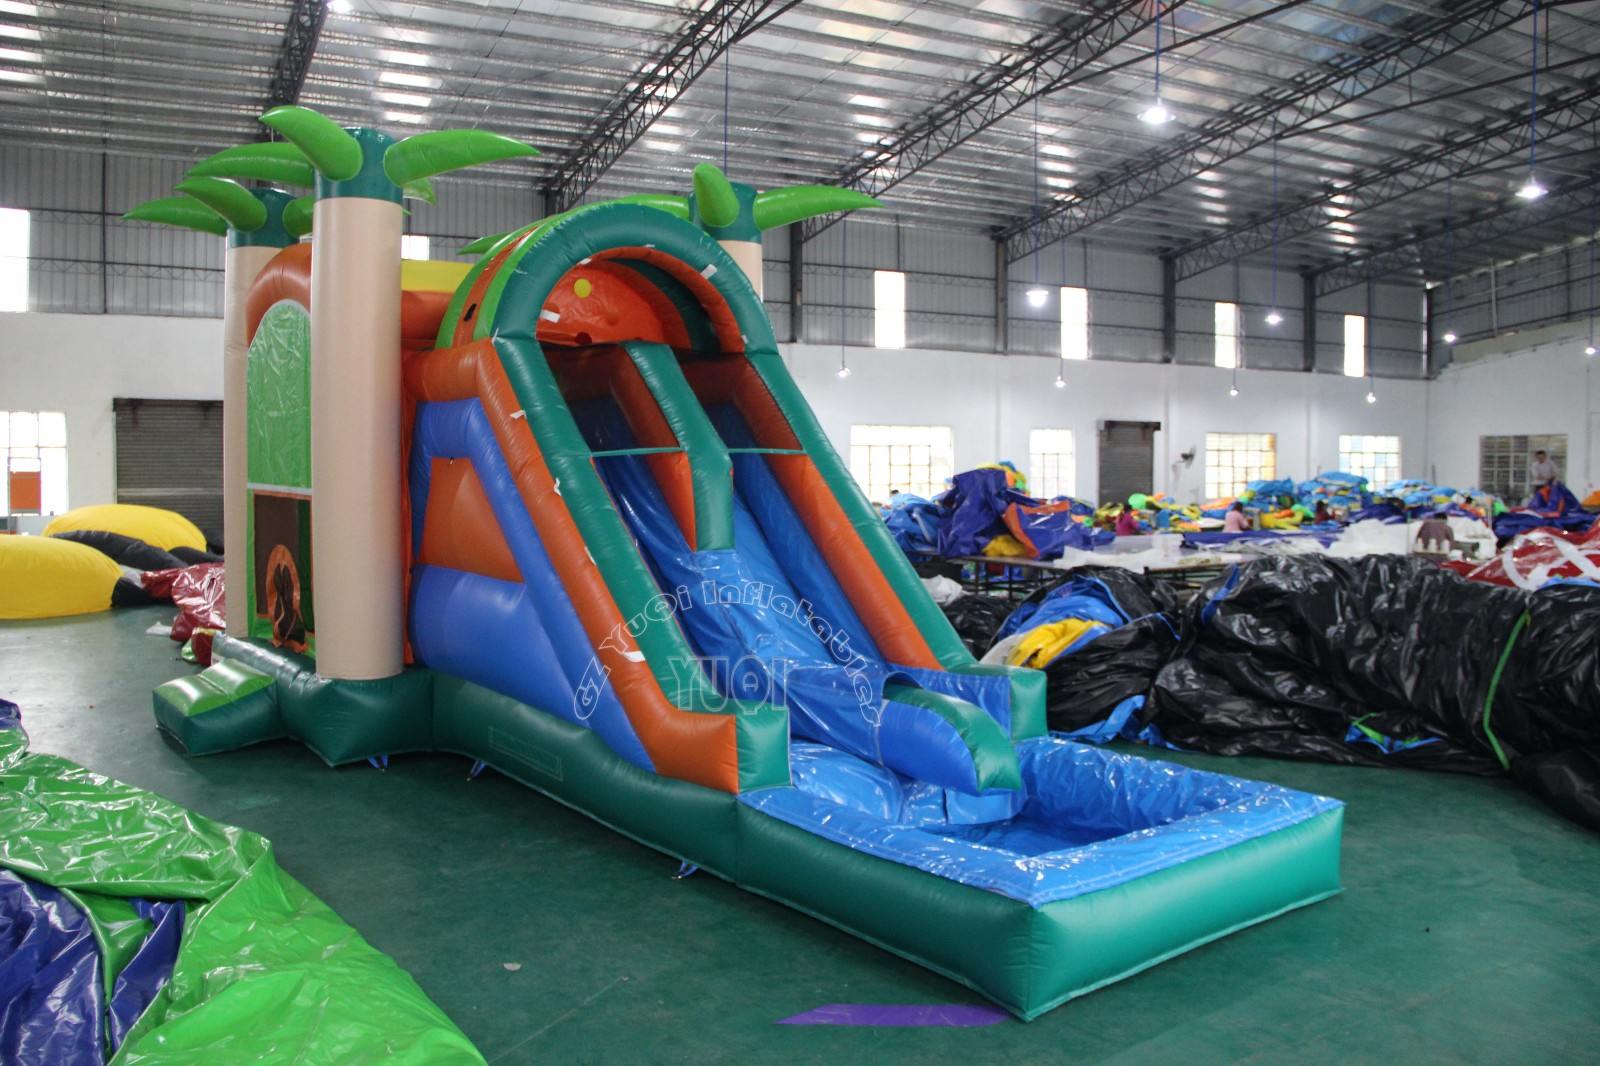 YUQI-Find Blow Up Slide outdoor Inflatable Water Slide On Yuqi Inflatables